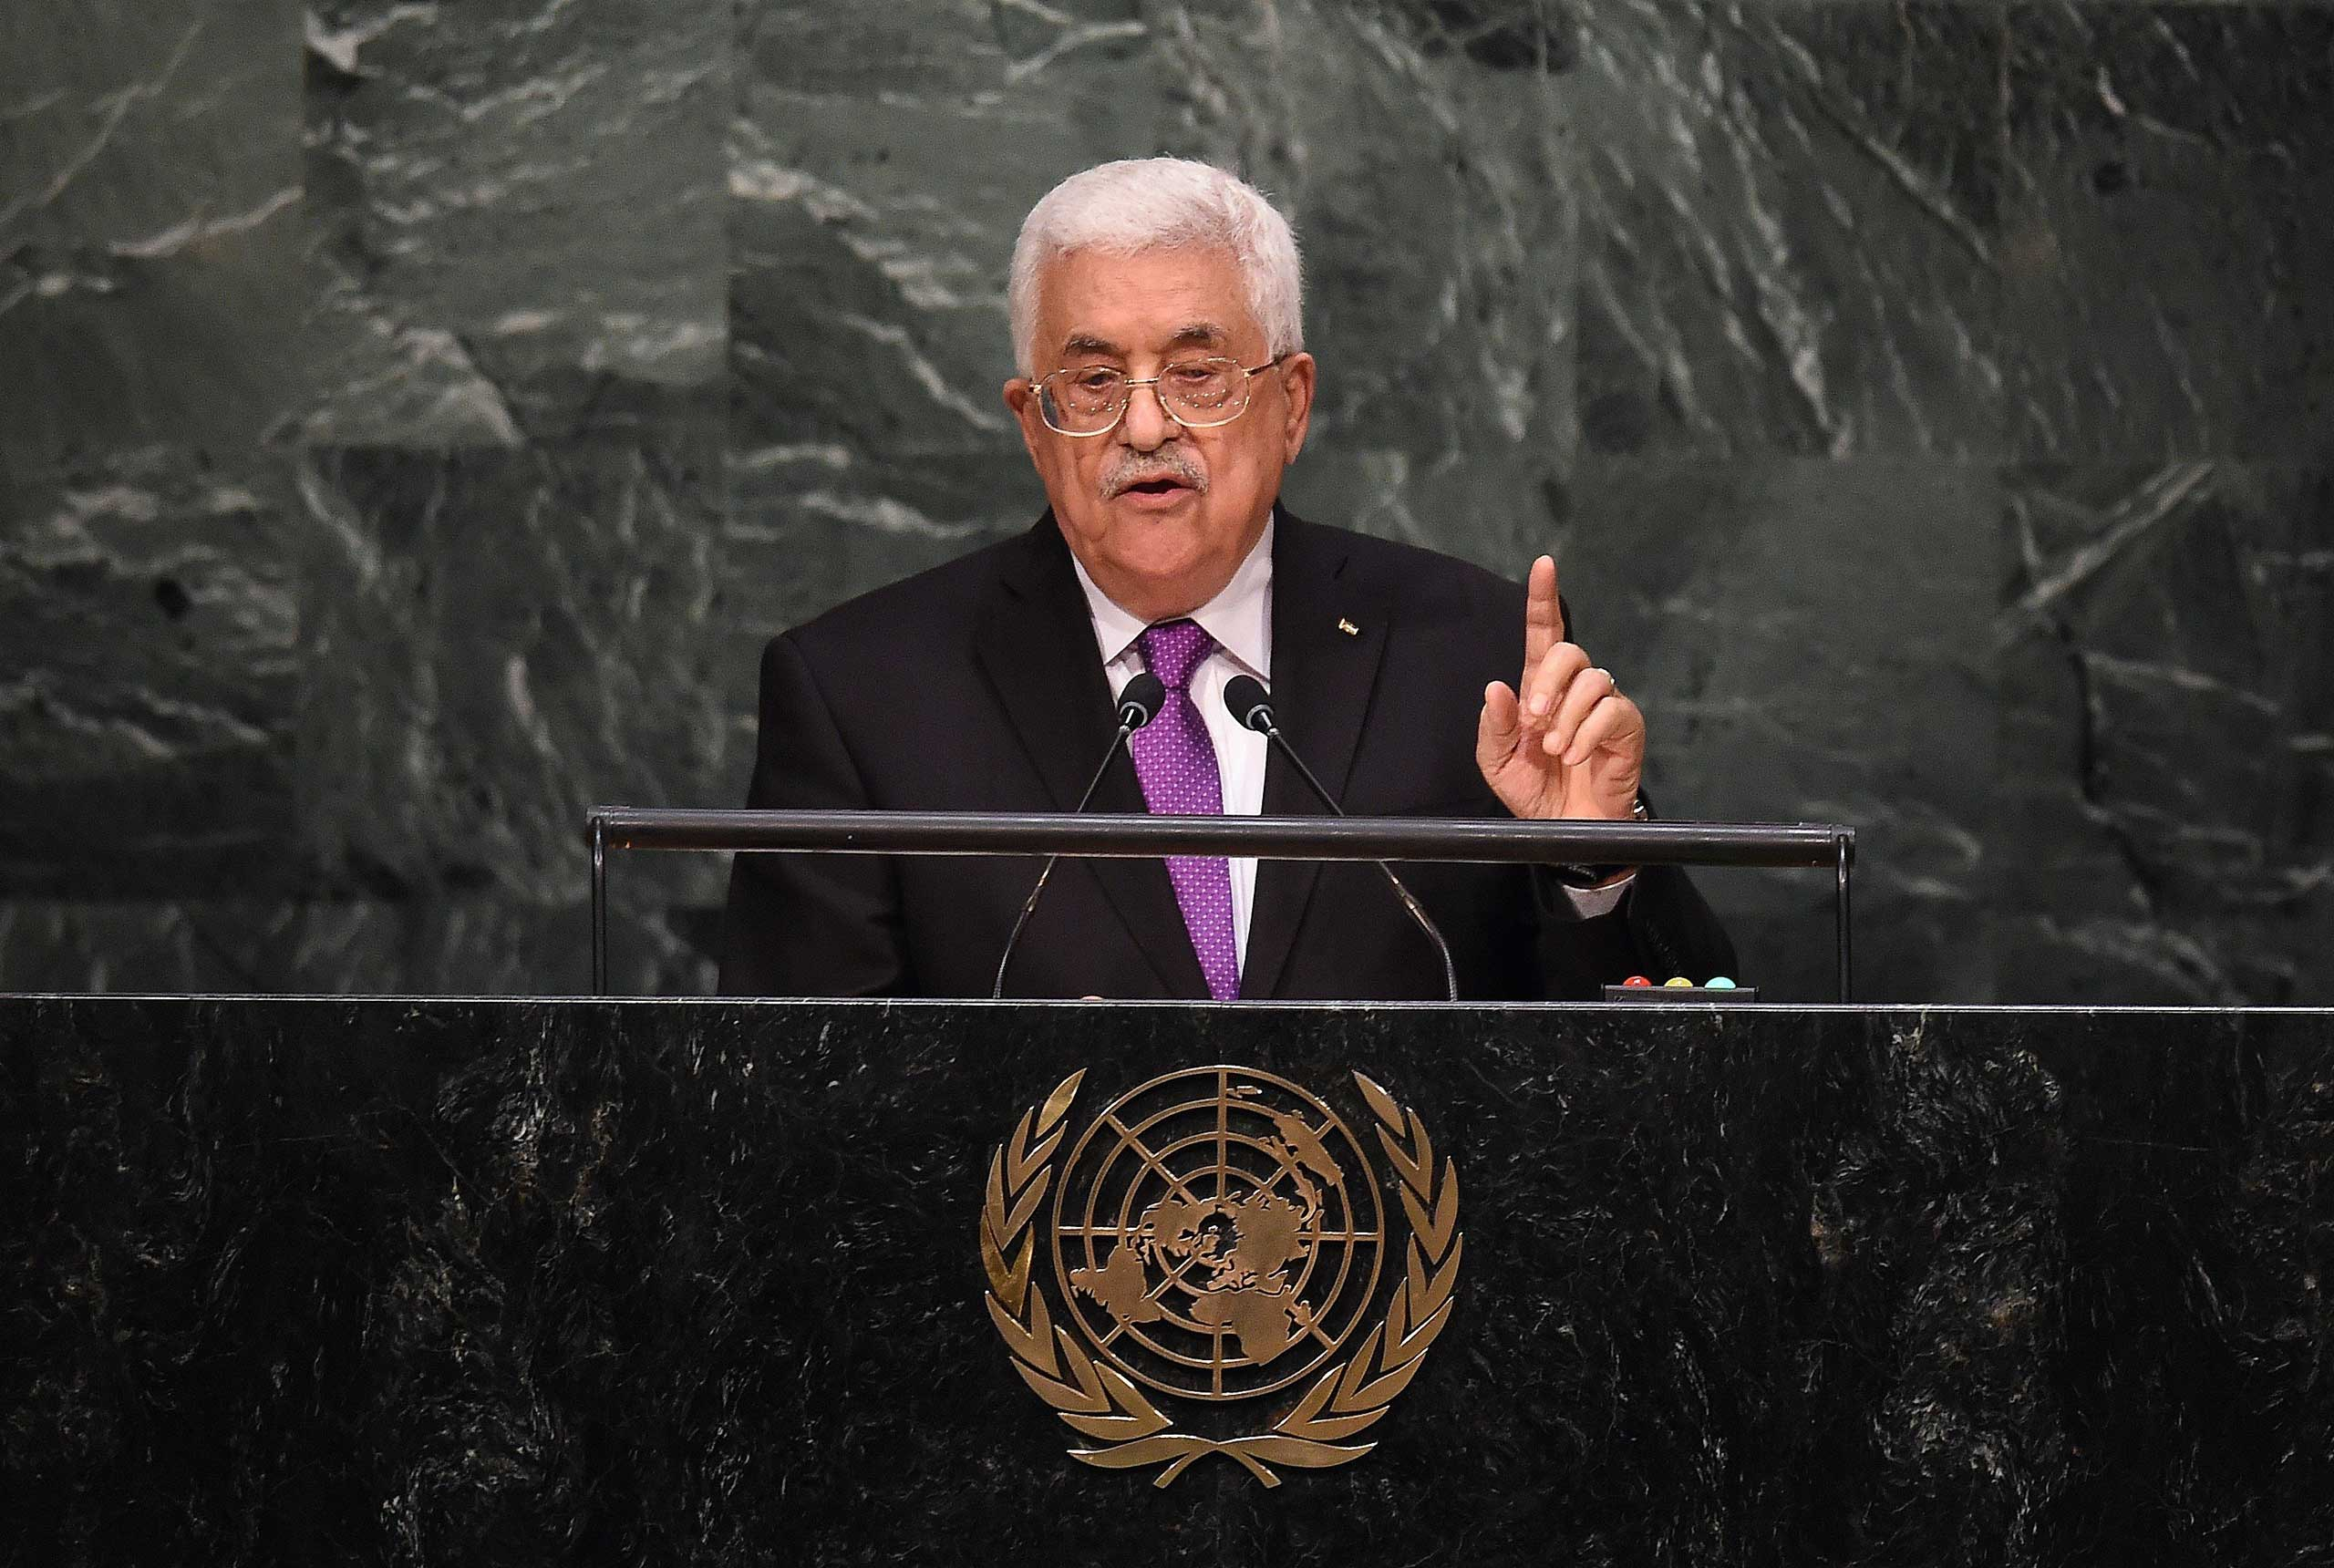 Palestinian Authority president Mahmoud Abbas addresses the 70th Session of the United Nations General Assembly at the UN in New York on Sept. 30, 2015.